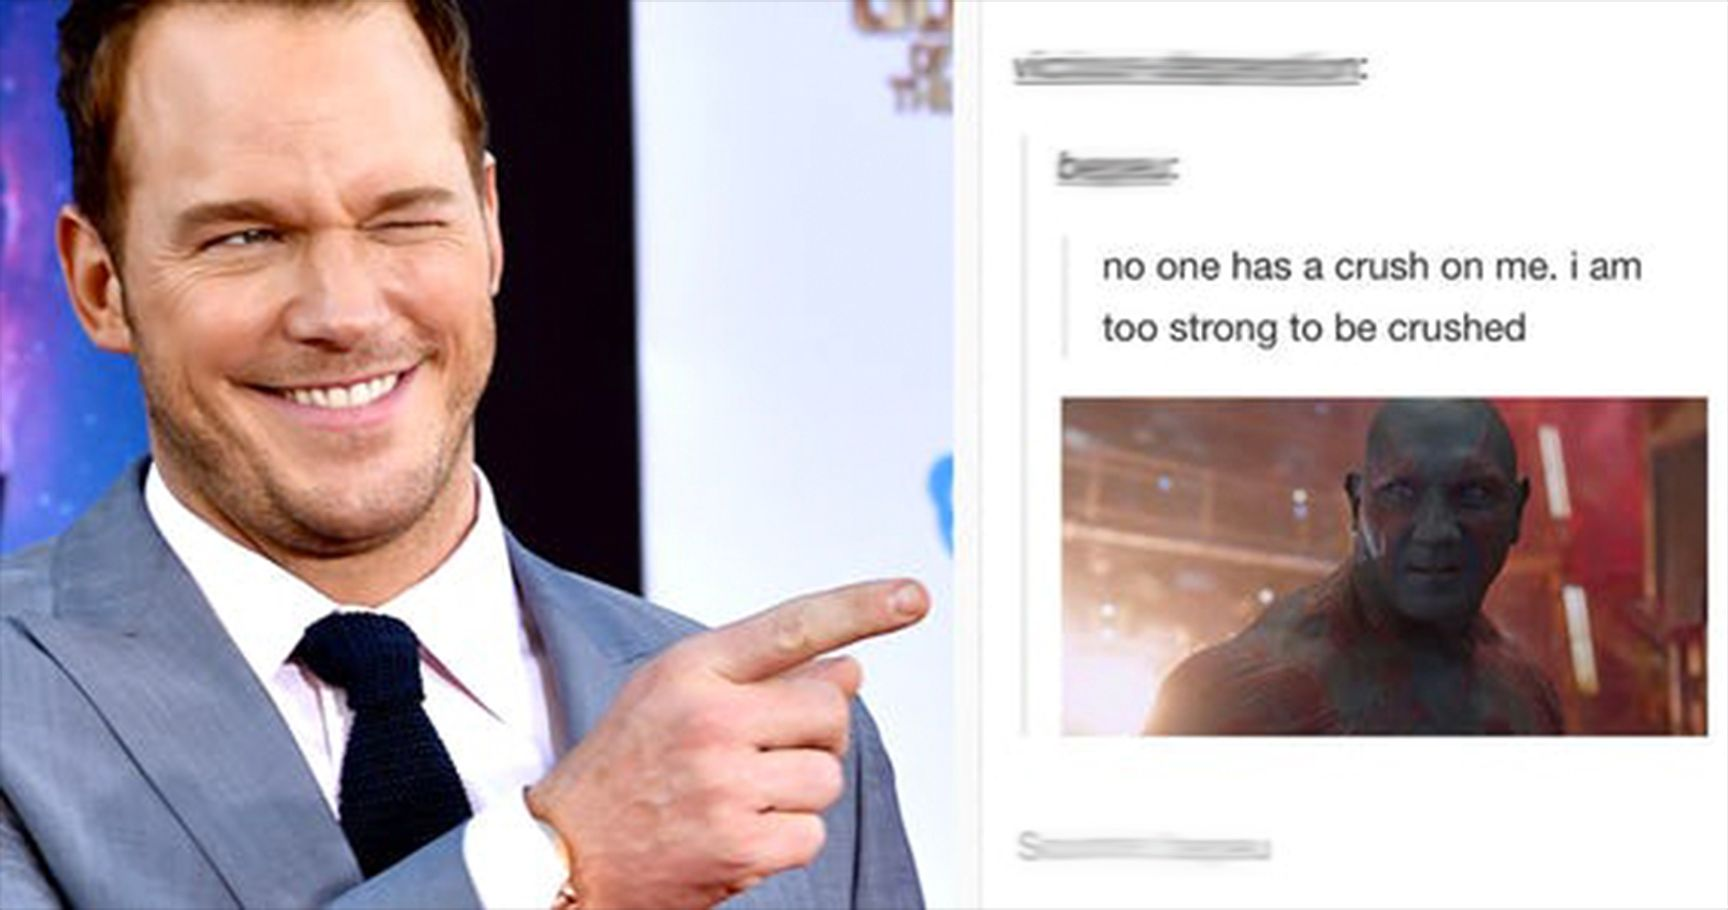 15 More 'Guardians Of The Galaxy' Memes That Will Leave You Crying